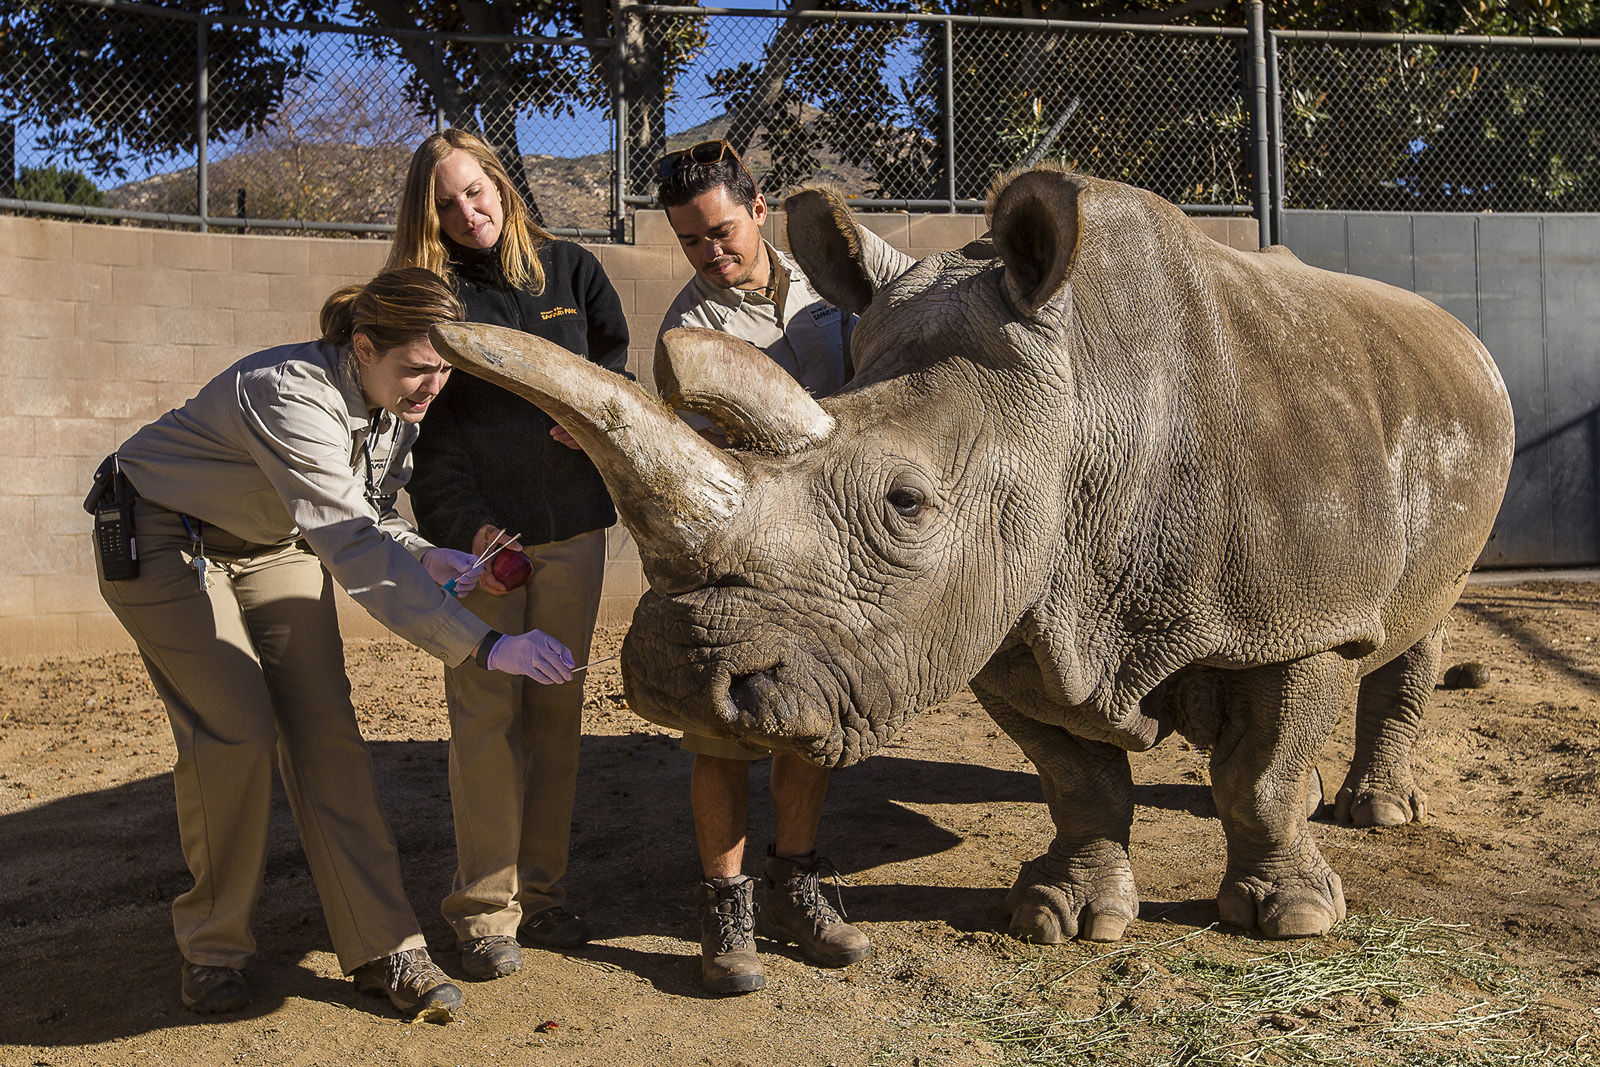 Nola, a white rhino, gets a vet exam